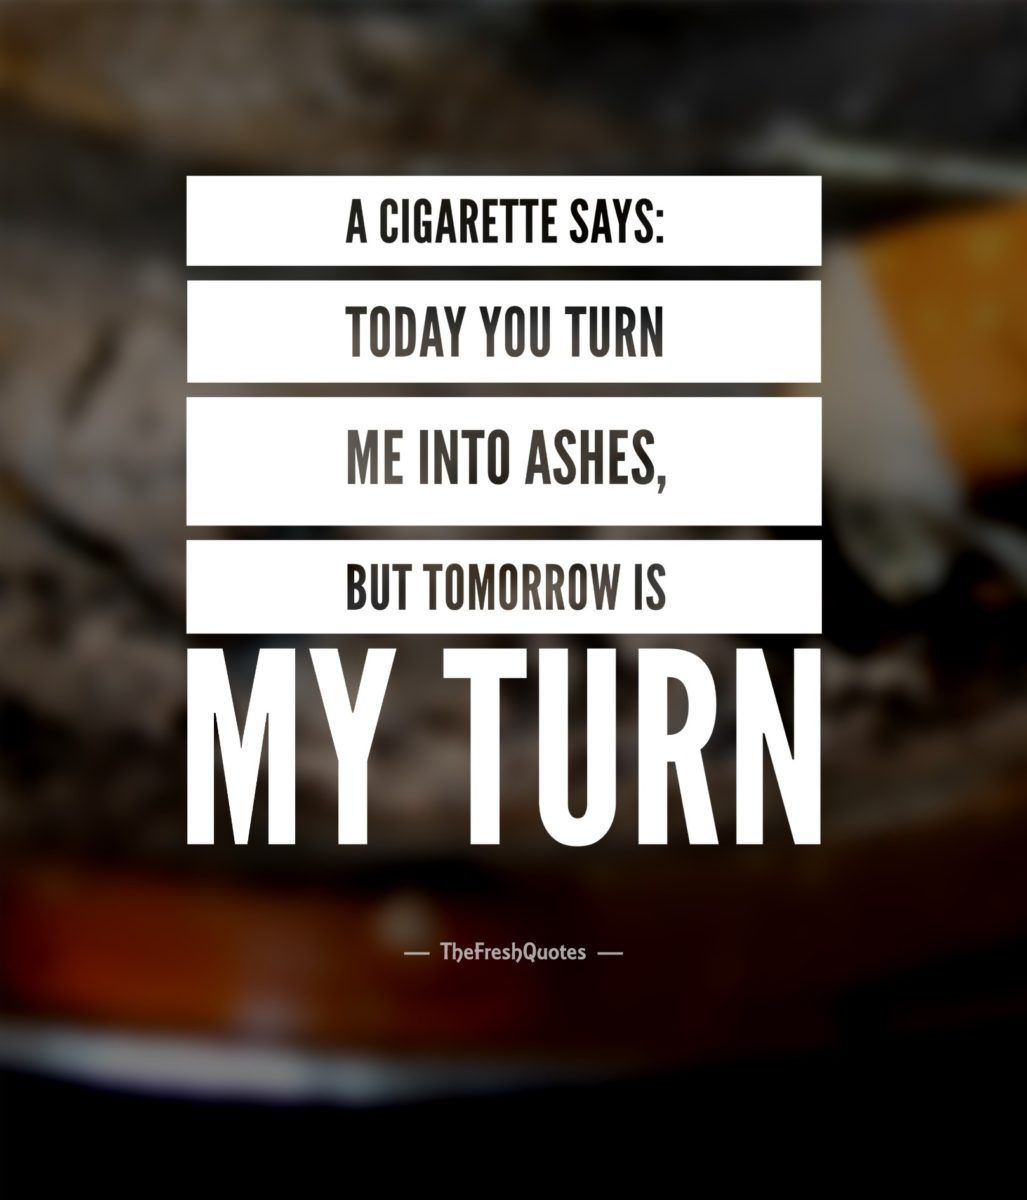 Smoking Quotes 50 Smoking And Tobacco Quotes & Slogans  Proverbs Qoutes And